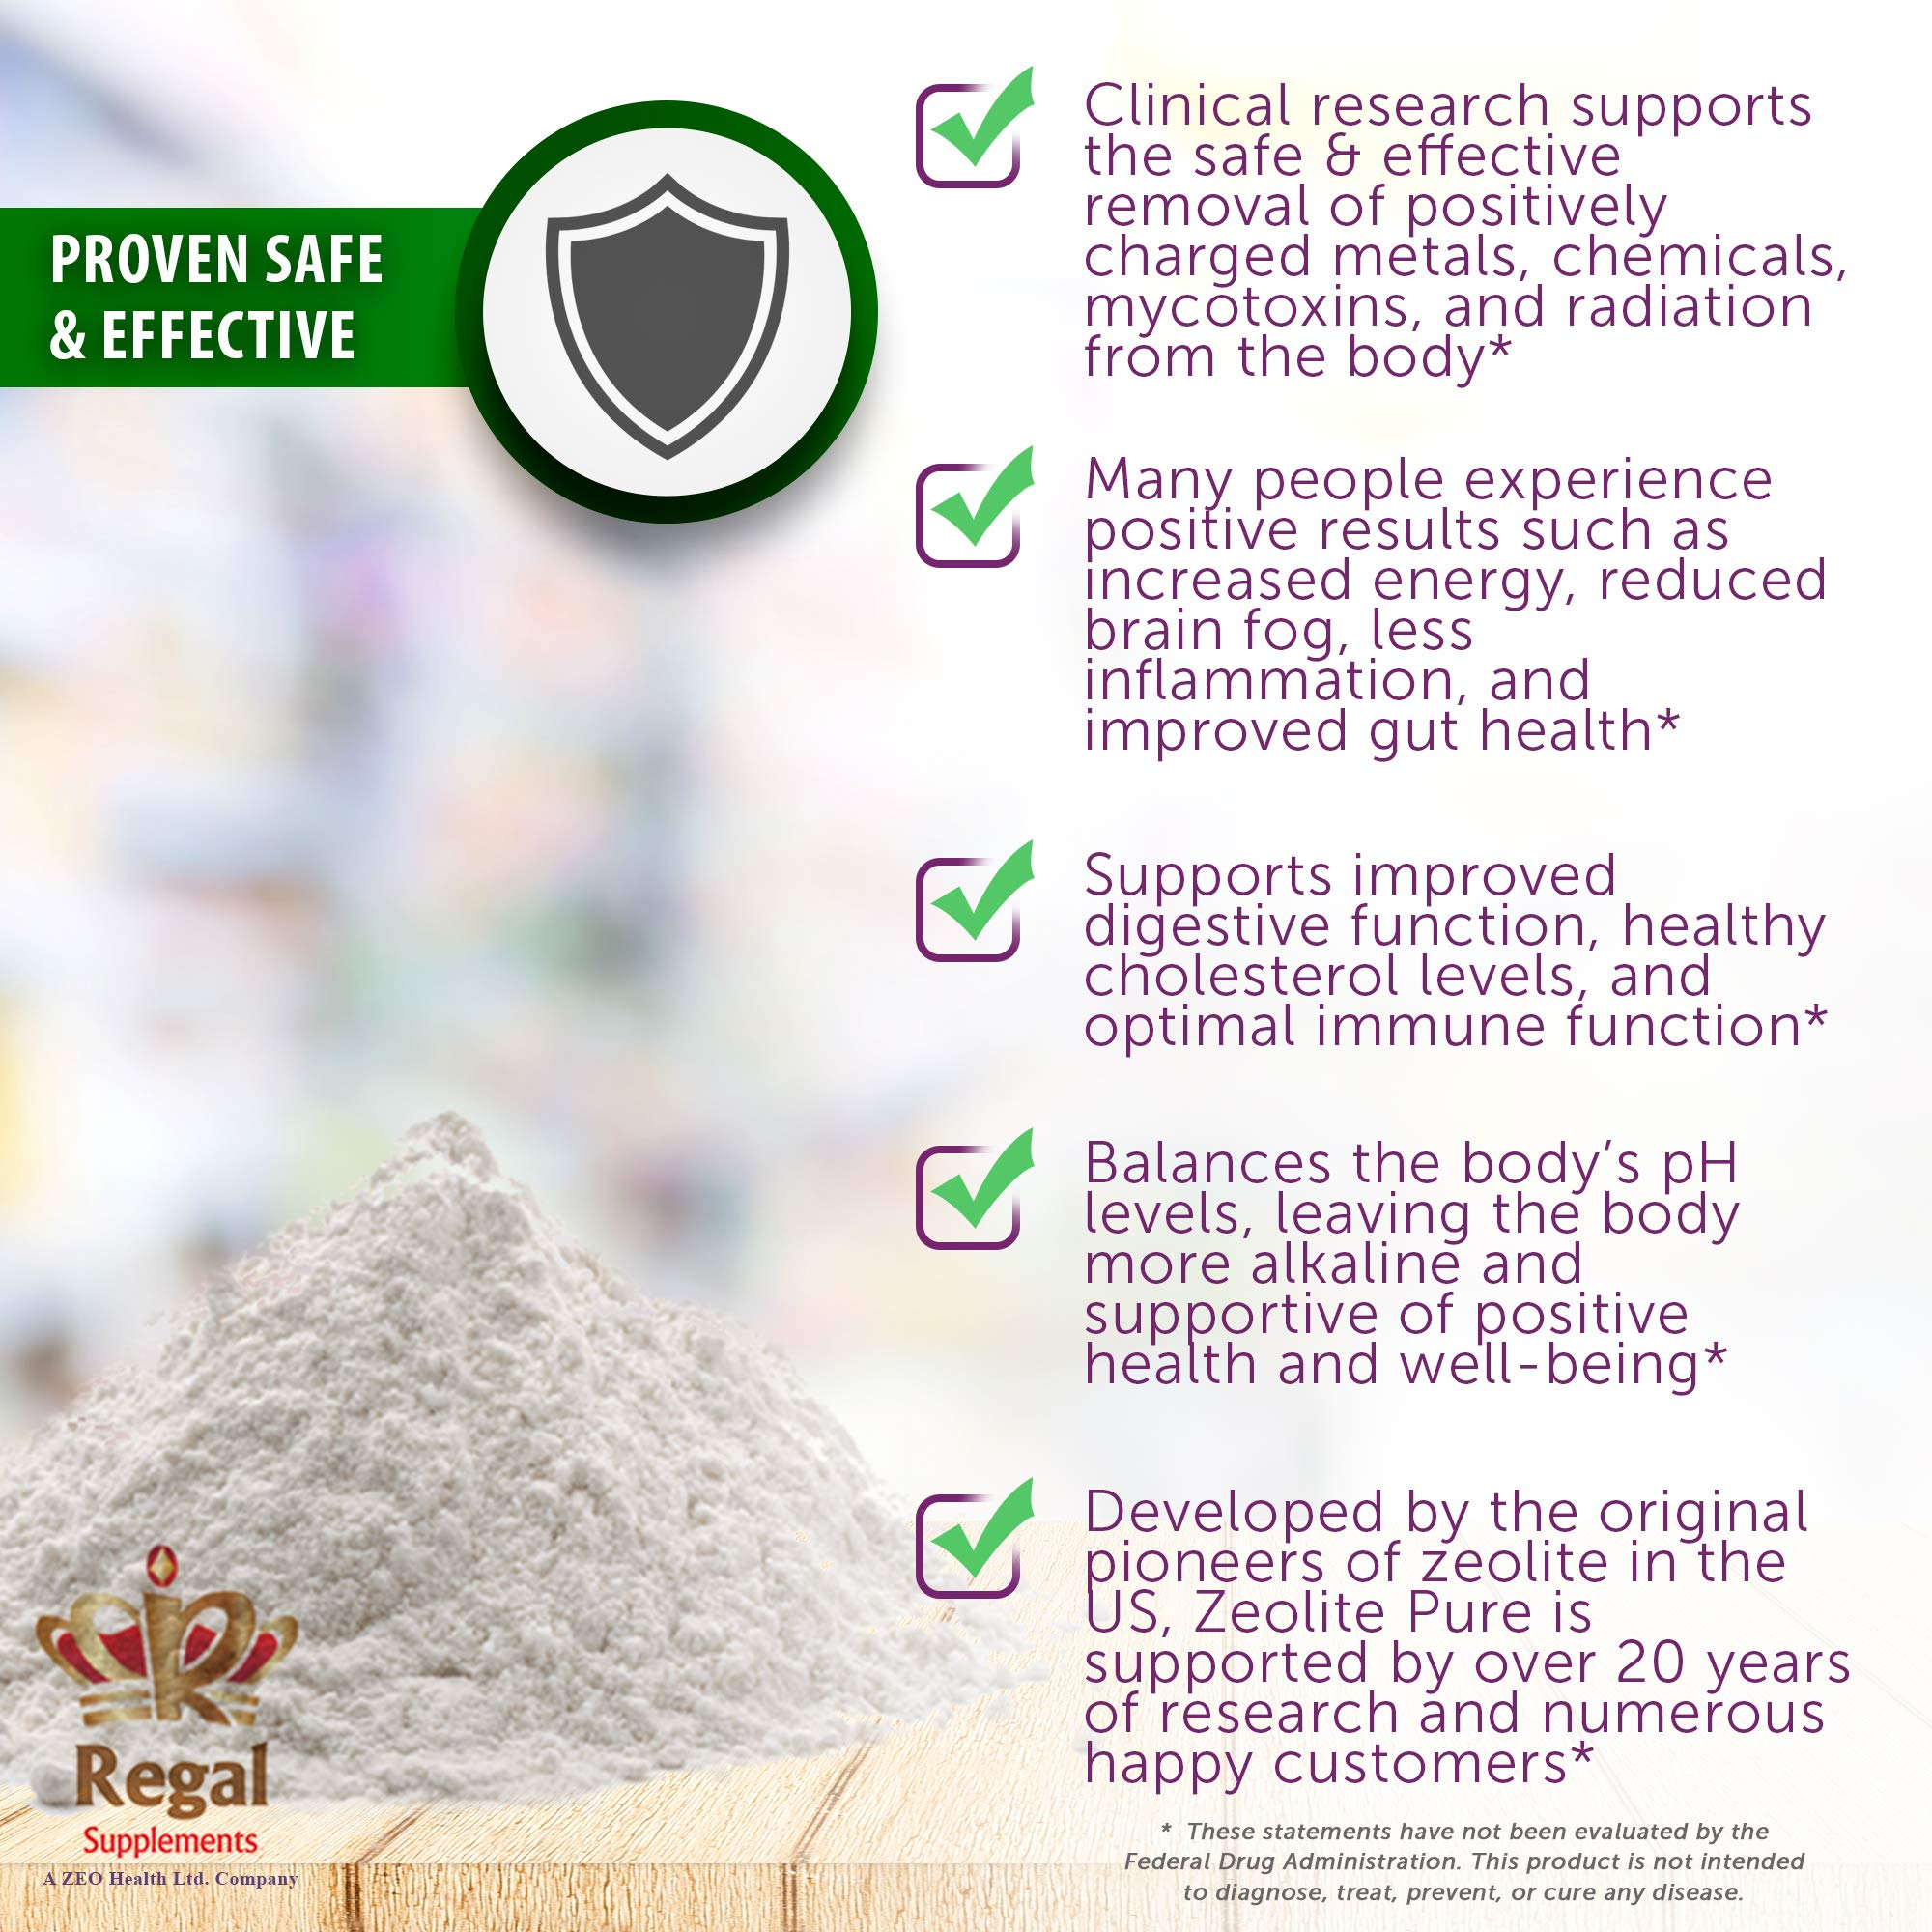 ZEOLITE PURE | Full Body Detox Cleanse | Safe, Gentle, & Effective Energy Booster that Supports Gut Health, Mental Clarity, & Healthy Inflammation Response| Original Zeolite Powder (400 Servings) by ZEOLITE PURE (Image #4)